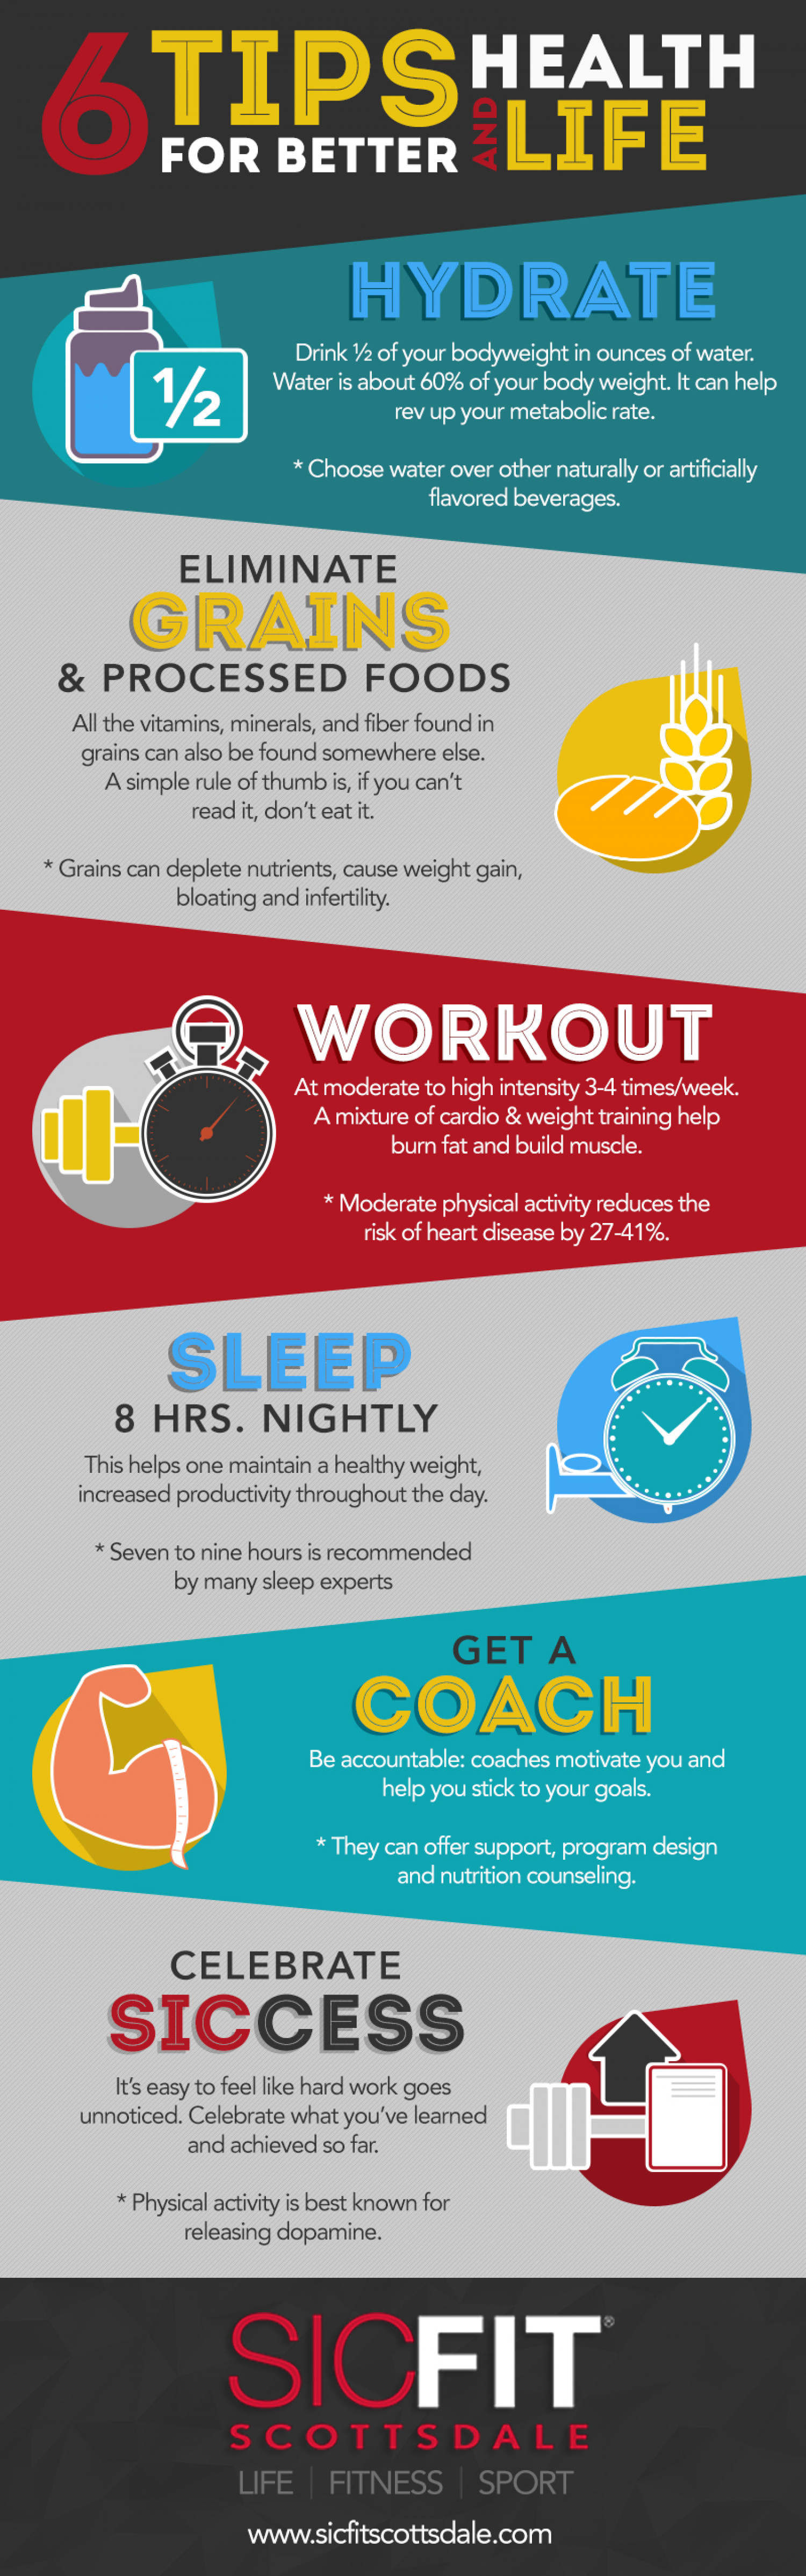 Six Tips For Better Health and Life Infographic